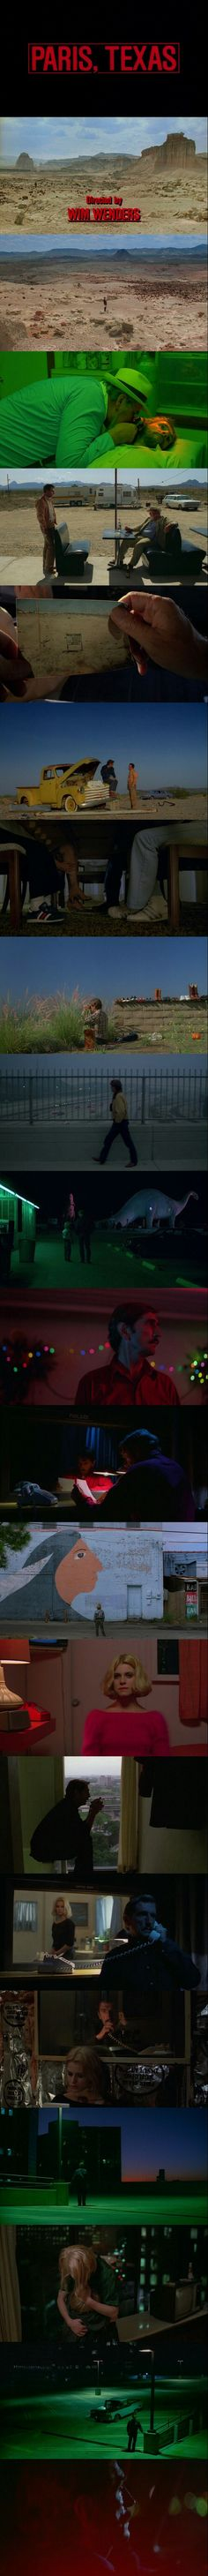 Paris, Texas (1984) Directed by Wim Wenders.